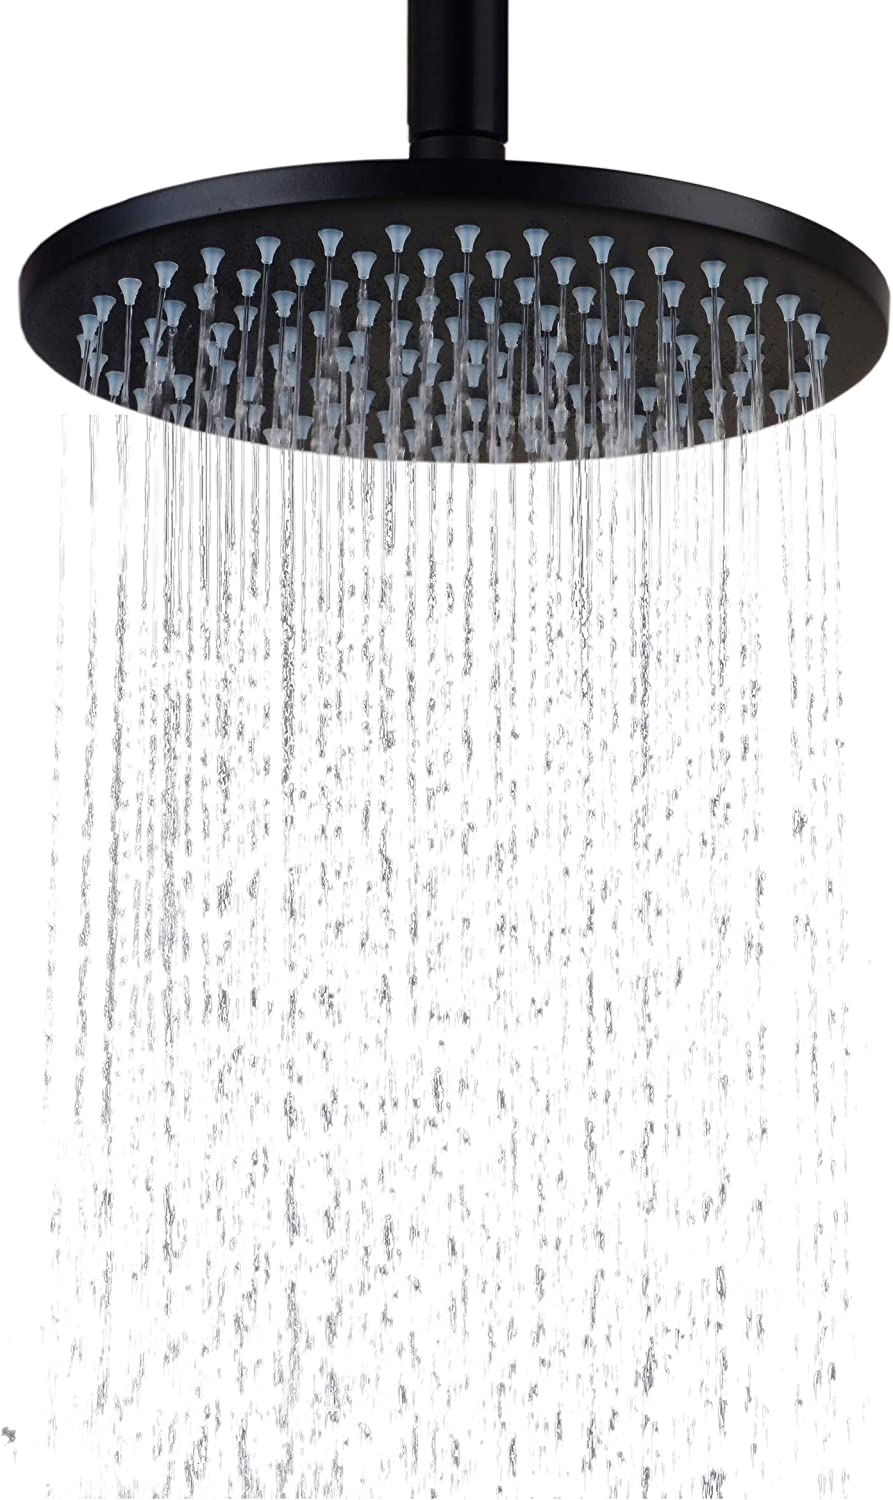 Hiendure 8 Inch Ceiling Mount Stainless Steel Stain Round Rainfall Shower Head,Oil Rubbed Bronze